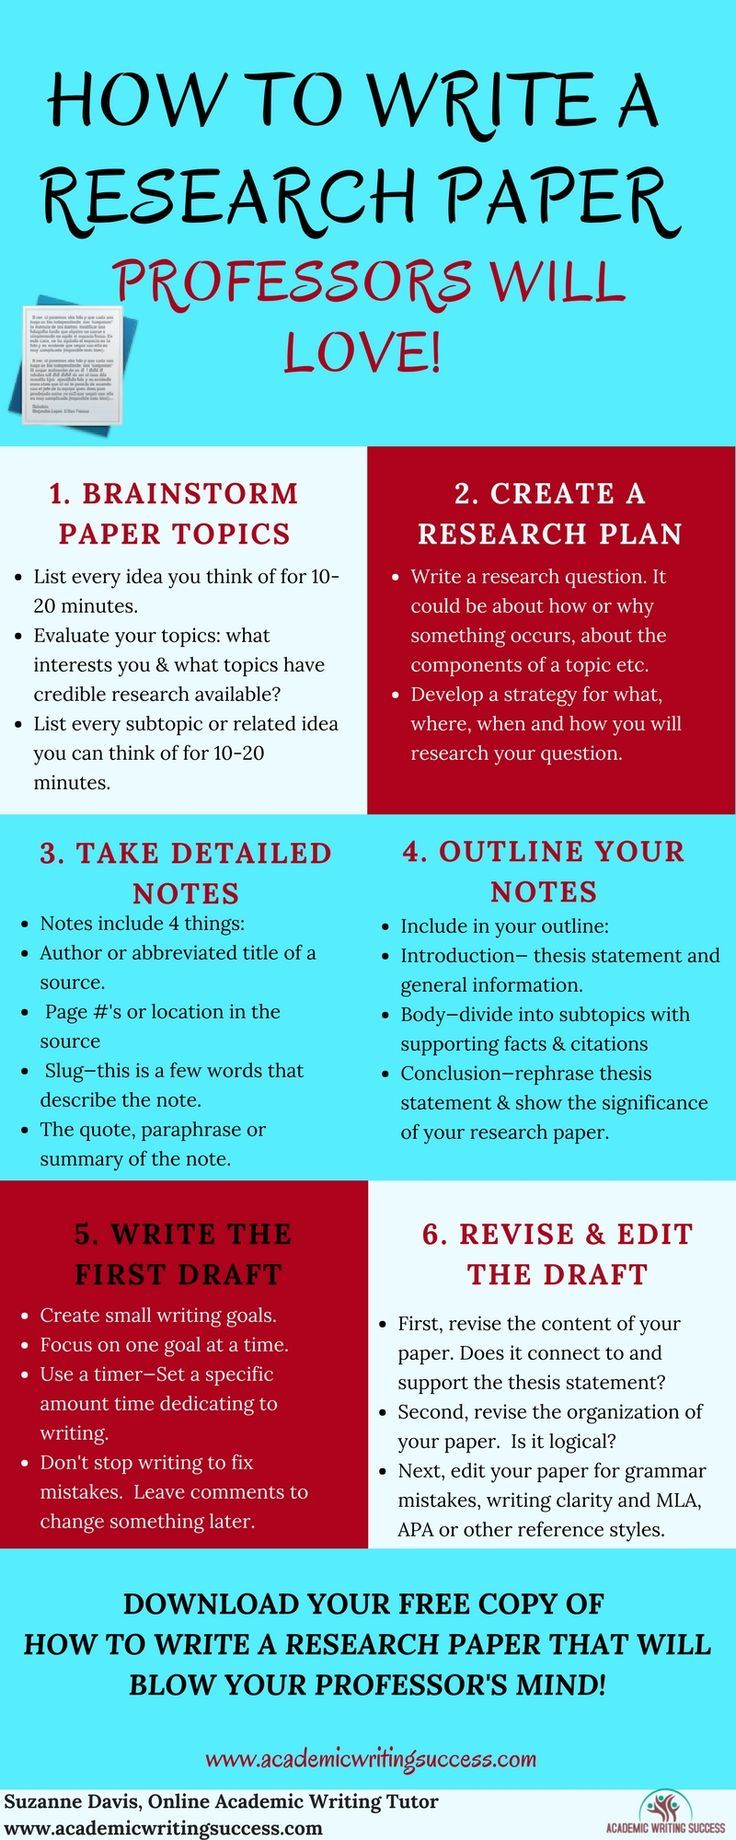 006 Research Paper Tips For Papers Wondrous Effective Writing An Presentation Full